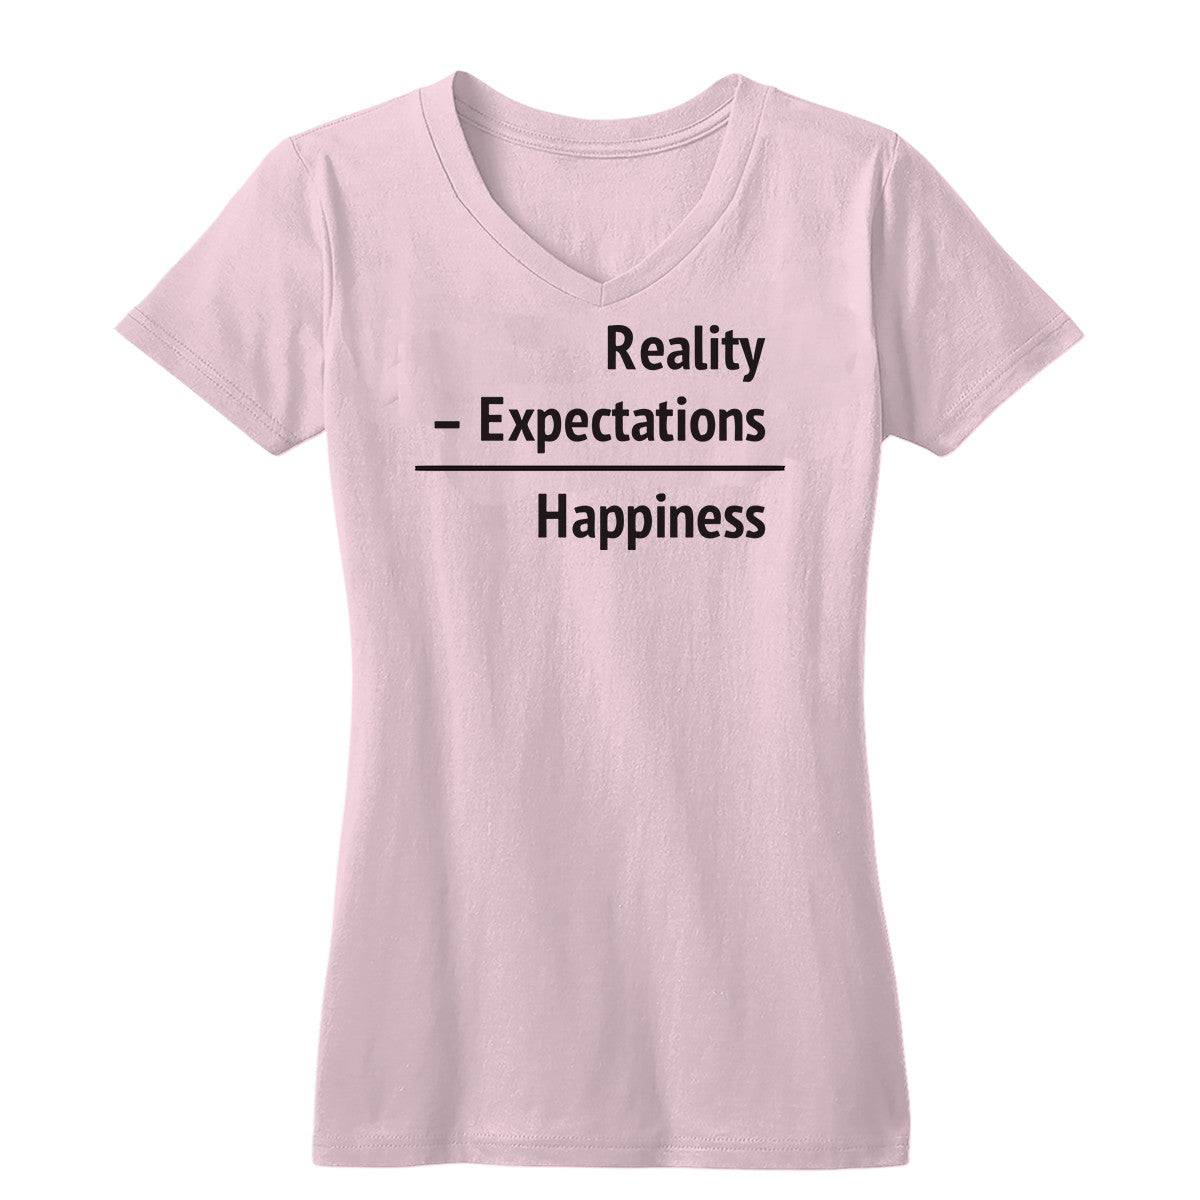 Happiness = Reality - Expectations Women's Tee